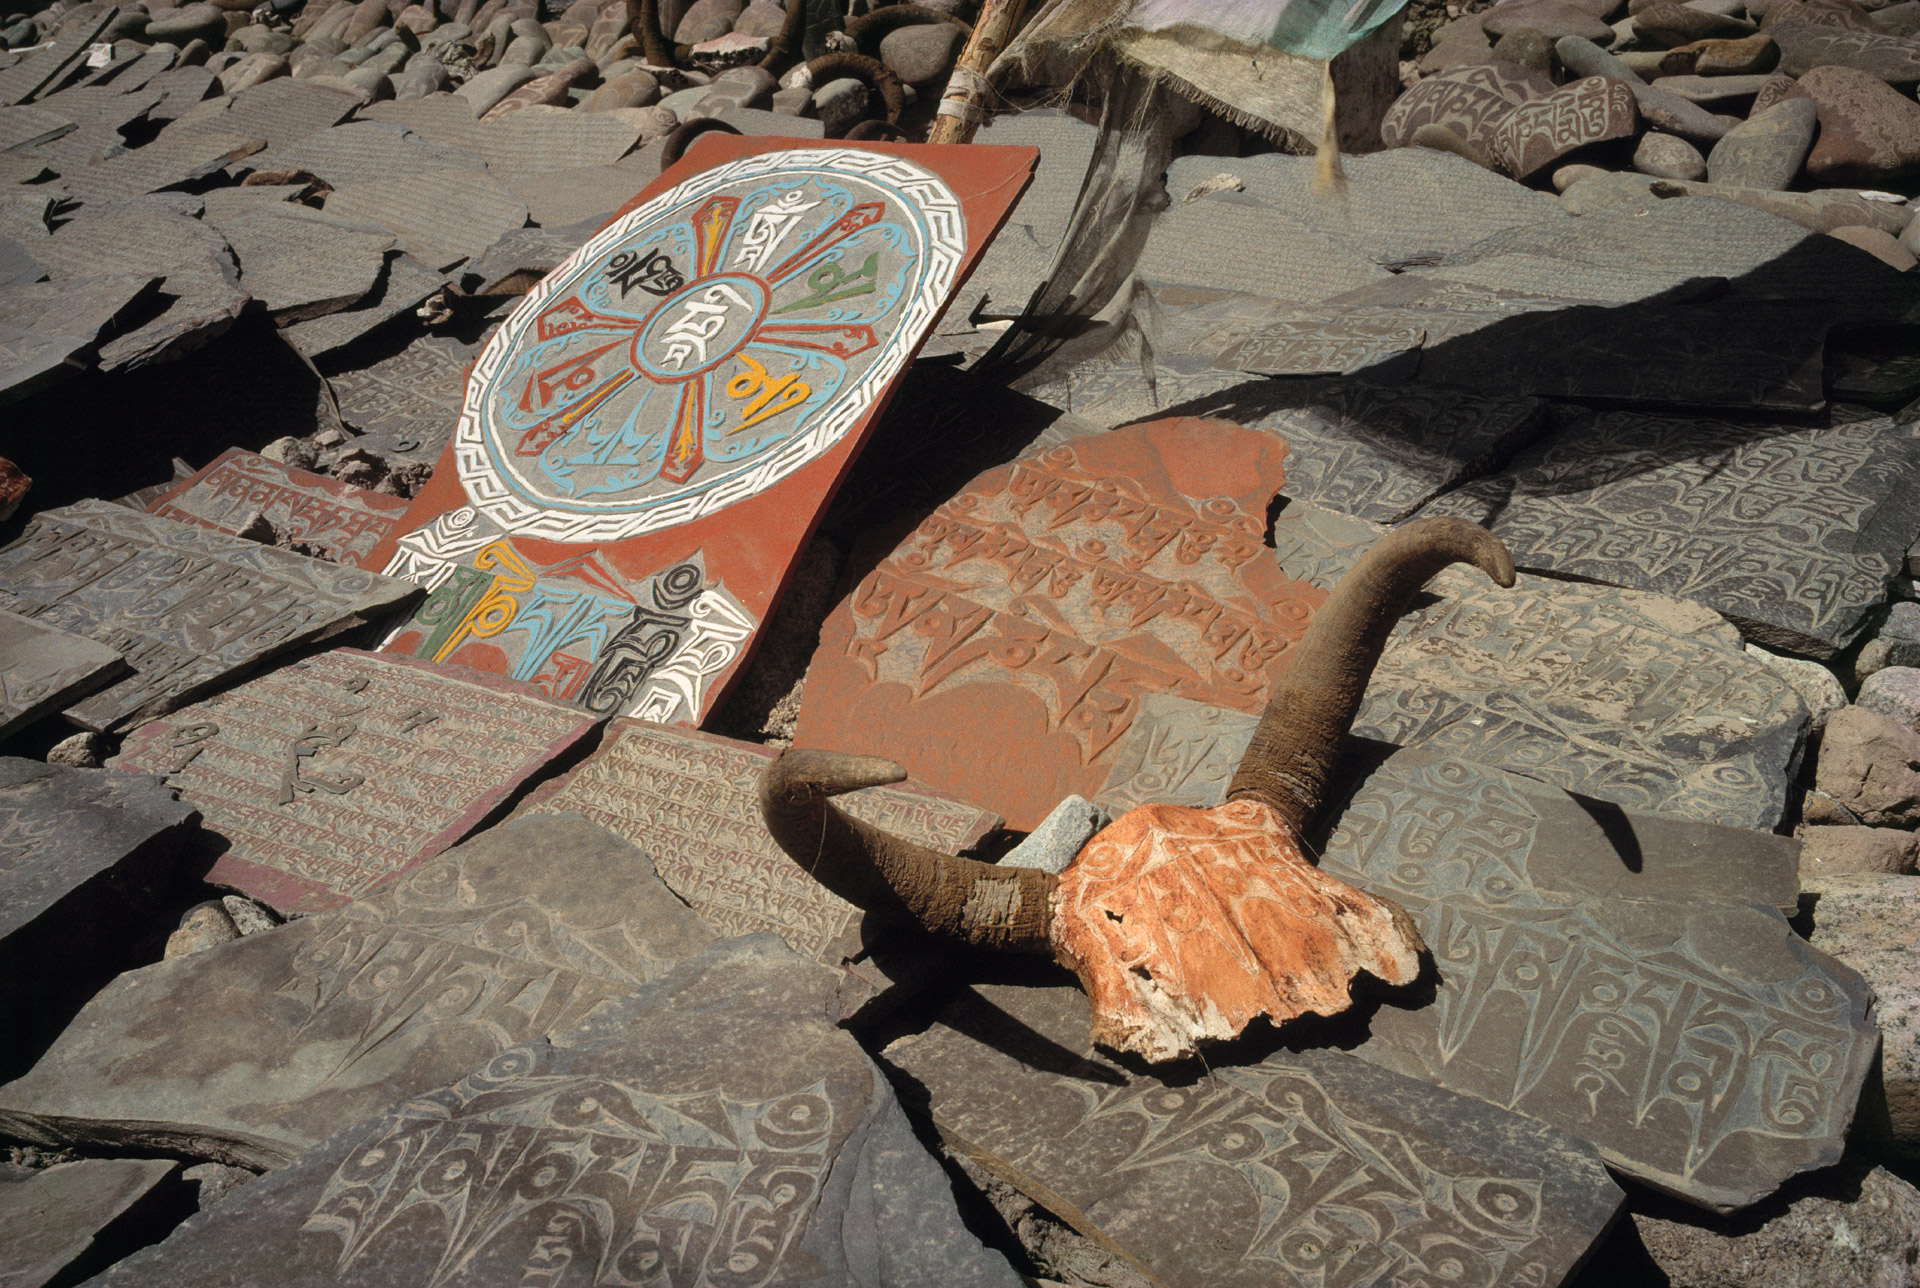 Mani stones and a skull from a goat is a religious manifestation in Ladakh in India